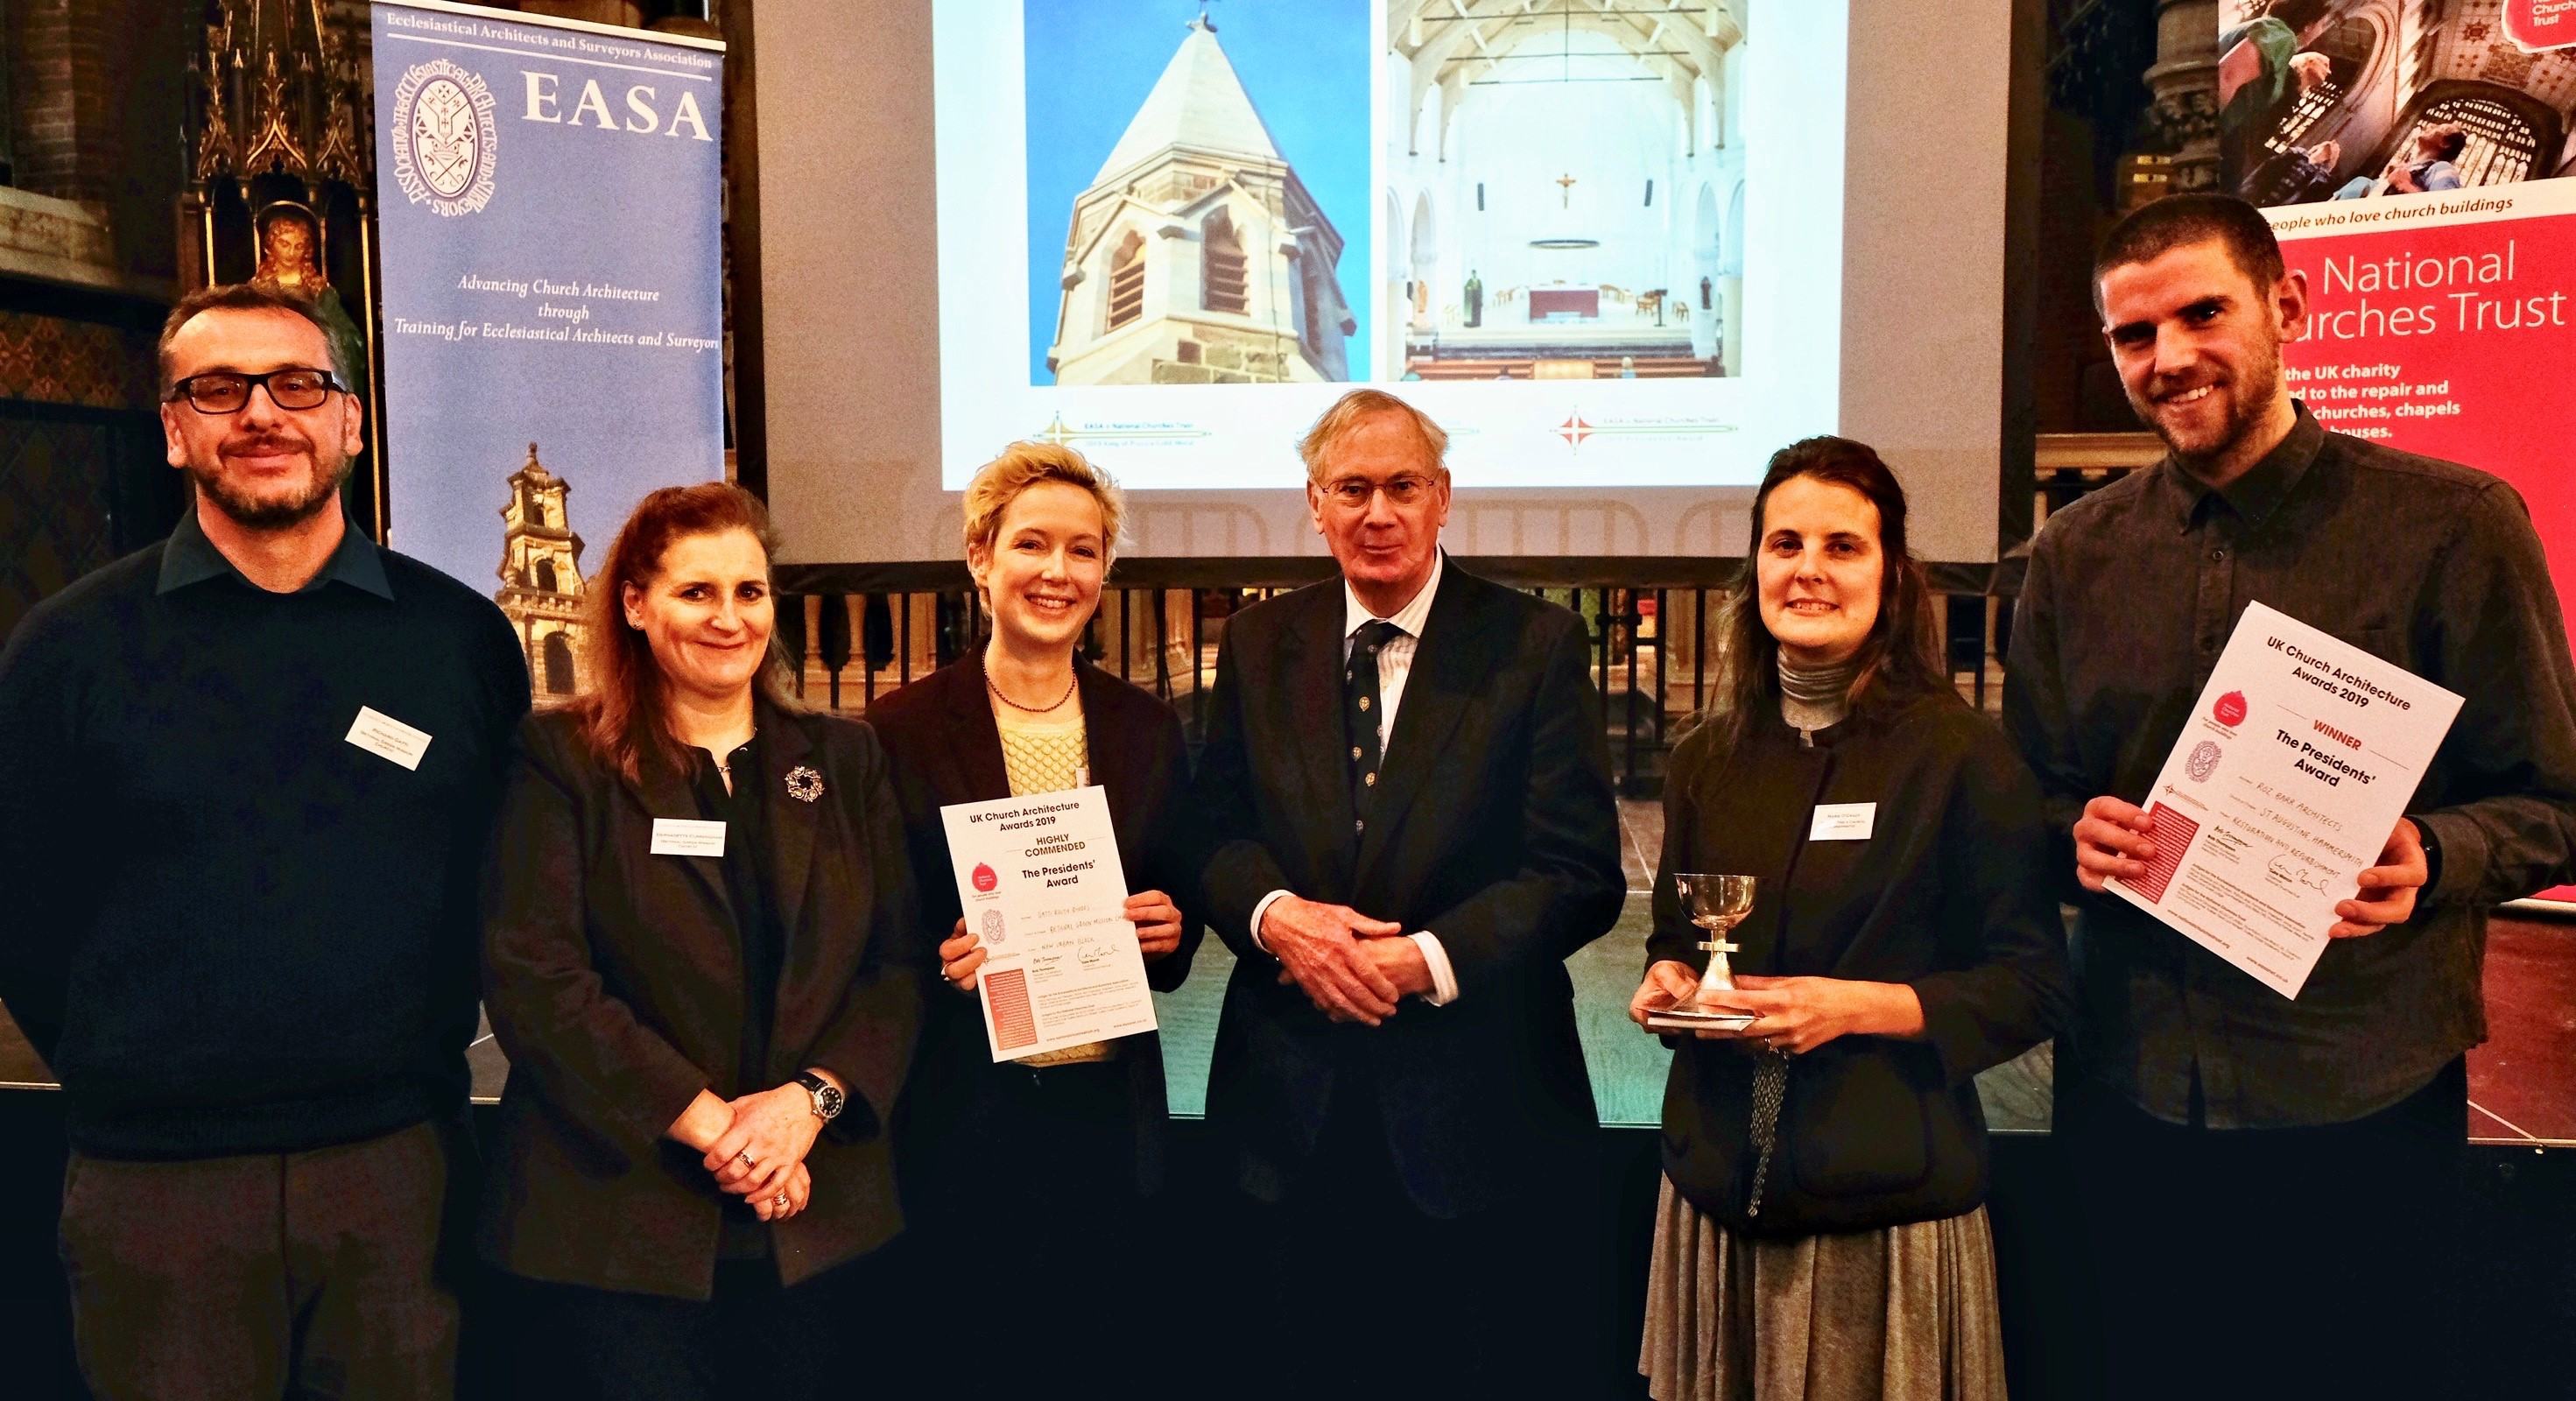 2019 Presidents' Award Winners (right) and Highly Commended (left) with HRH The Duke of Gloucester